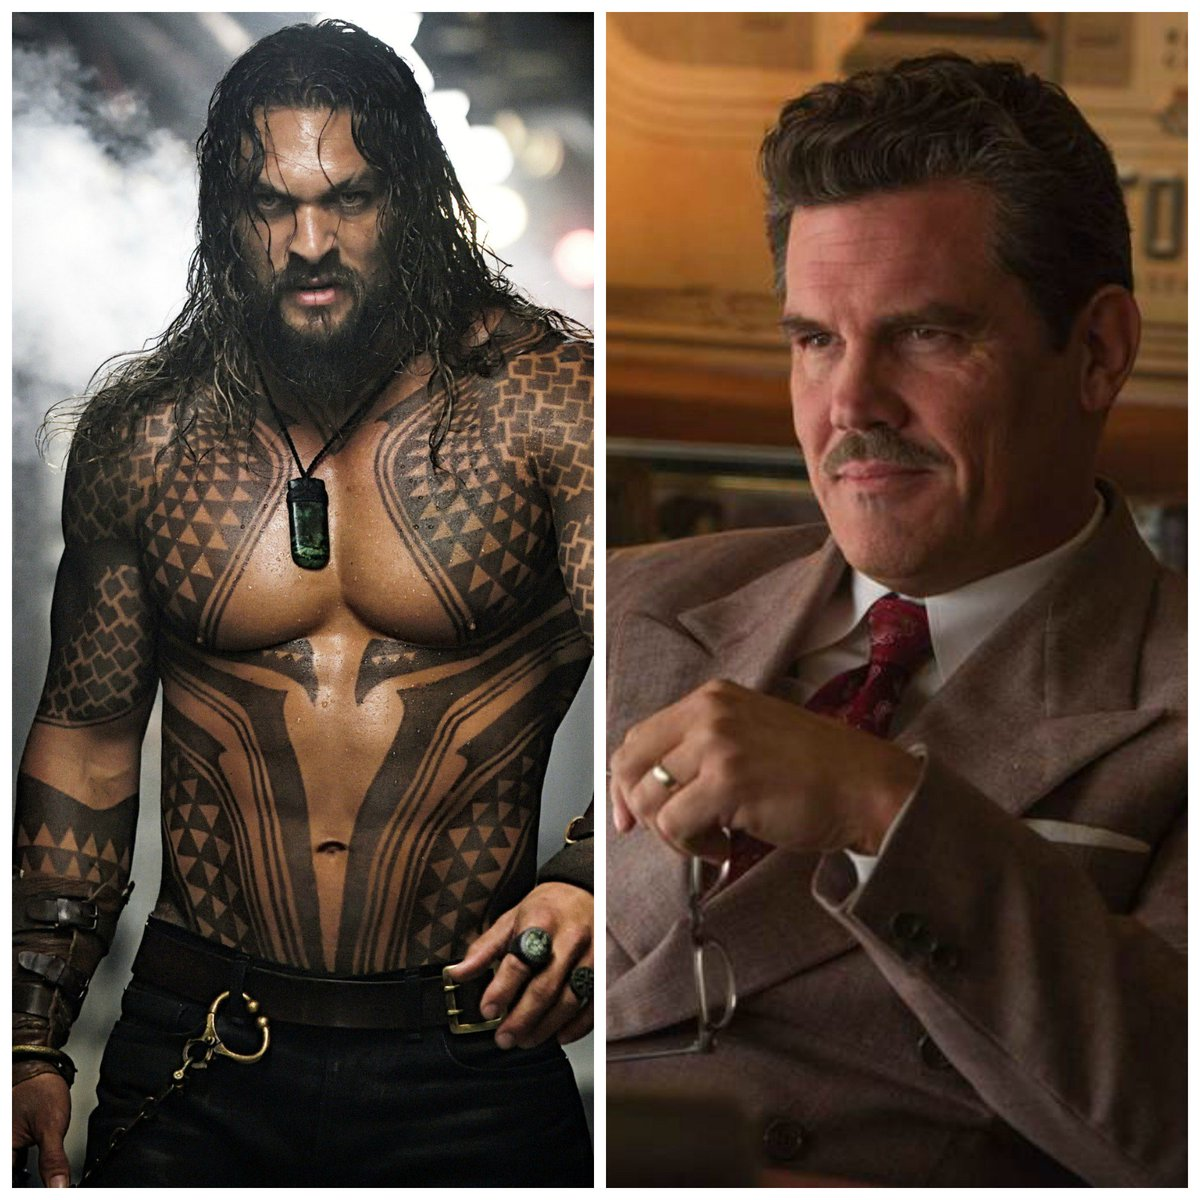 Jason Momoa & Josh Brolin are joining Denis Villeneuve's Dune.  Casual reminder how on stacked this cast is: Timothée Chalamet Rebecca Ferguson Dave Bautista Zendaya Oscar Isaac Javier Bardem Charlotte Rampling Stellan Skarsgård  please respond w/ a GIF corresponding to the hype.